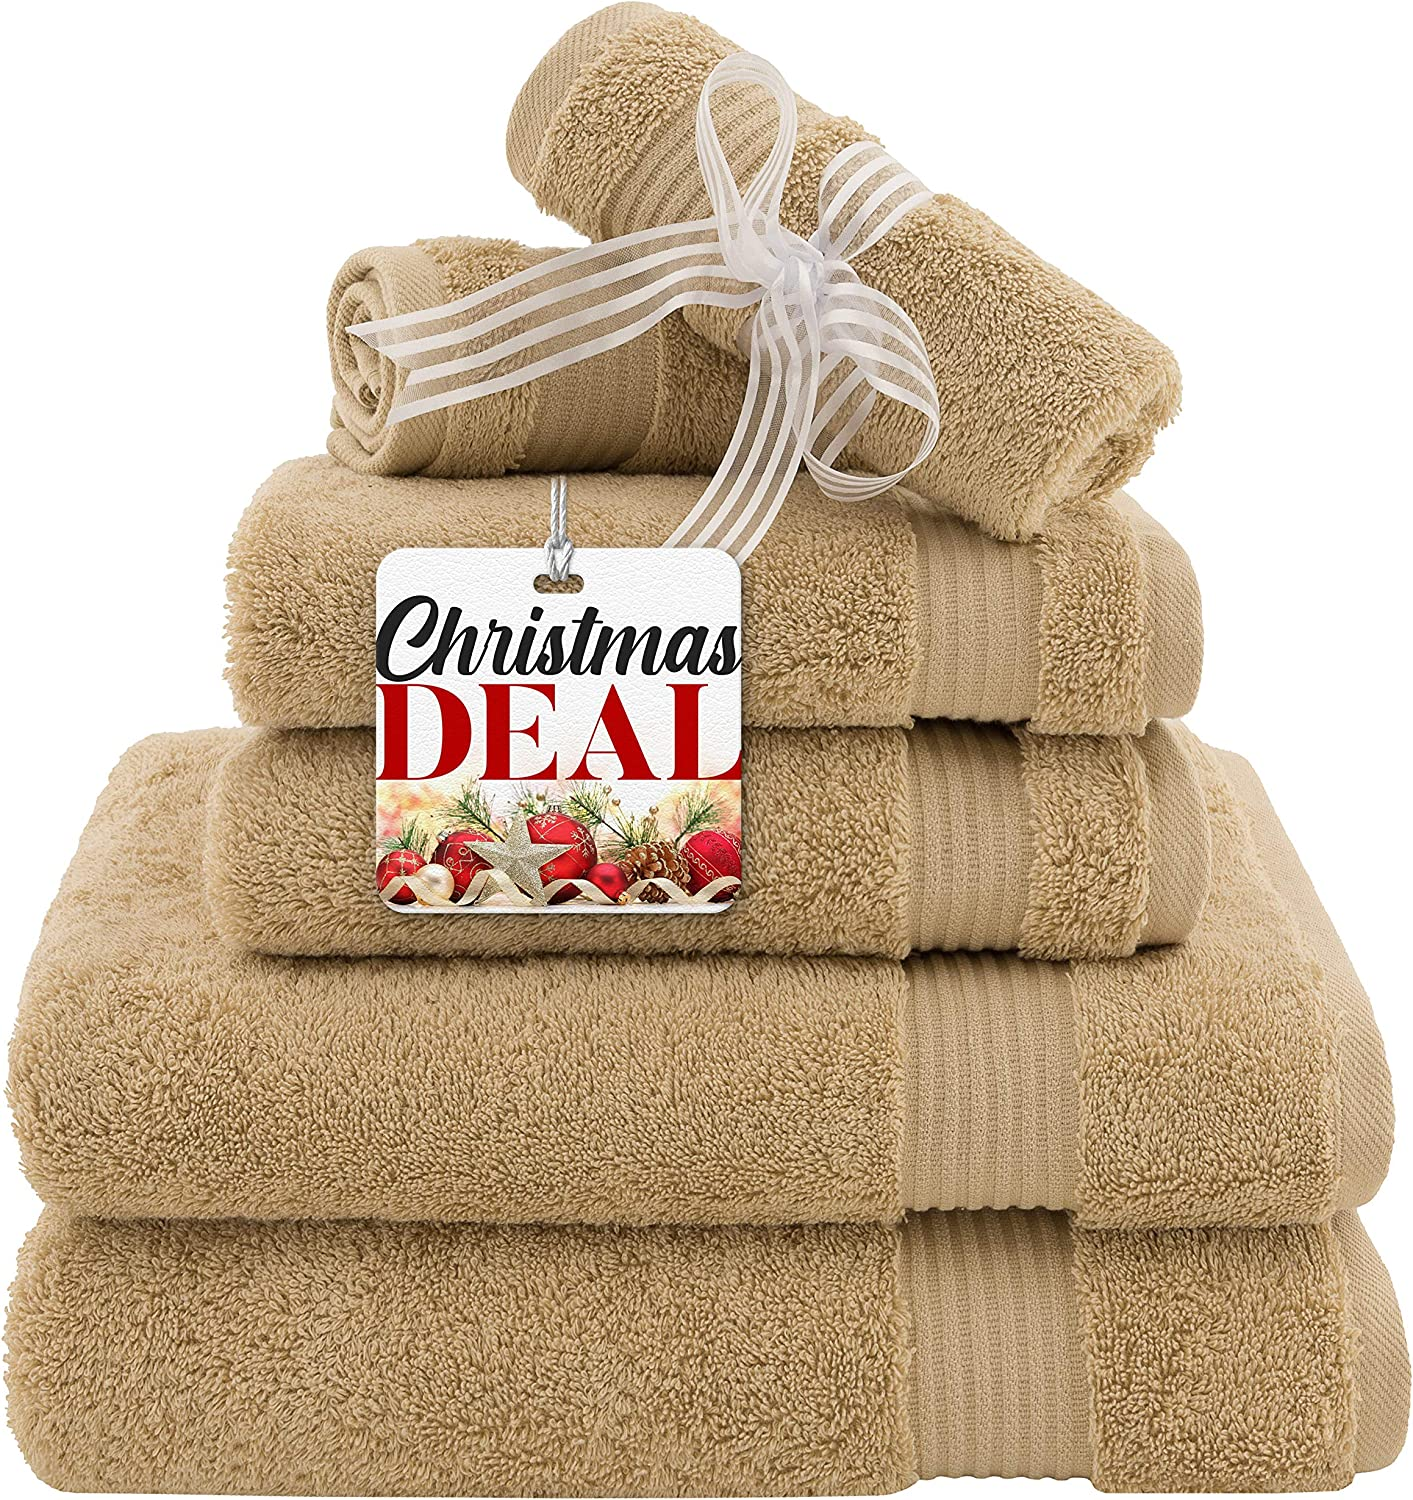 Super Absorbent and Soft Hotel & Spa Quality, Cotton, 6 Piece Turkish Towel Set for Kitchen and Decorative Bathroom Sets Includes 2 Bath Towels 2 Hand Towels 2 Washcloths, Sand Taupe